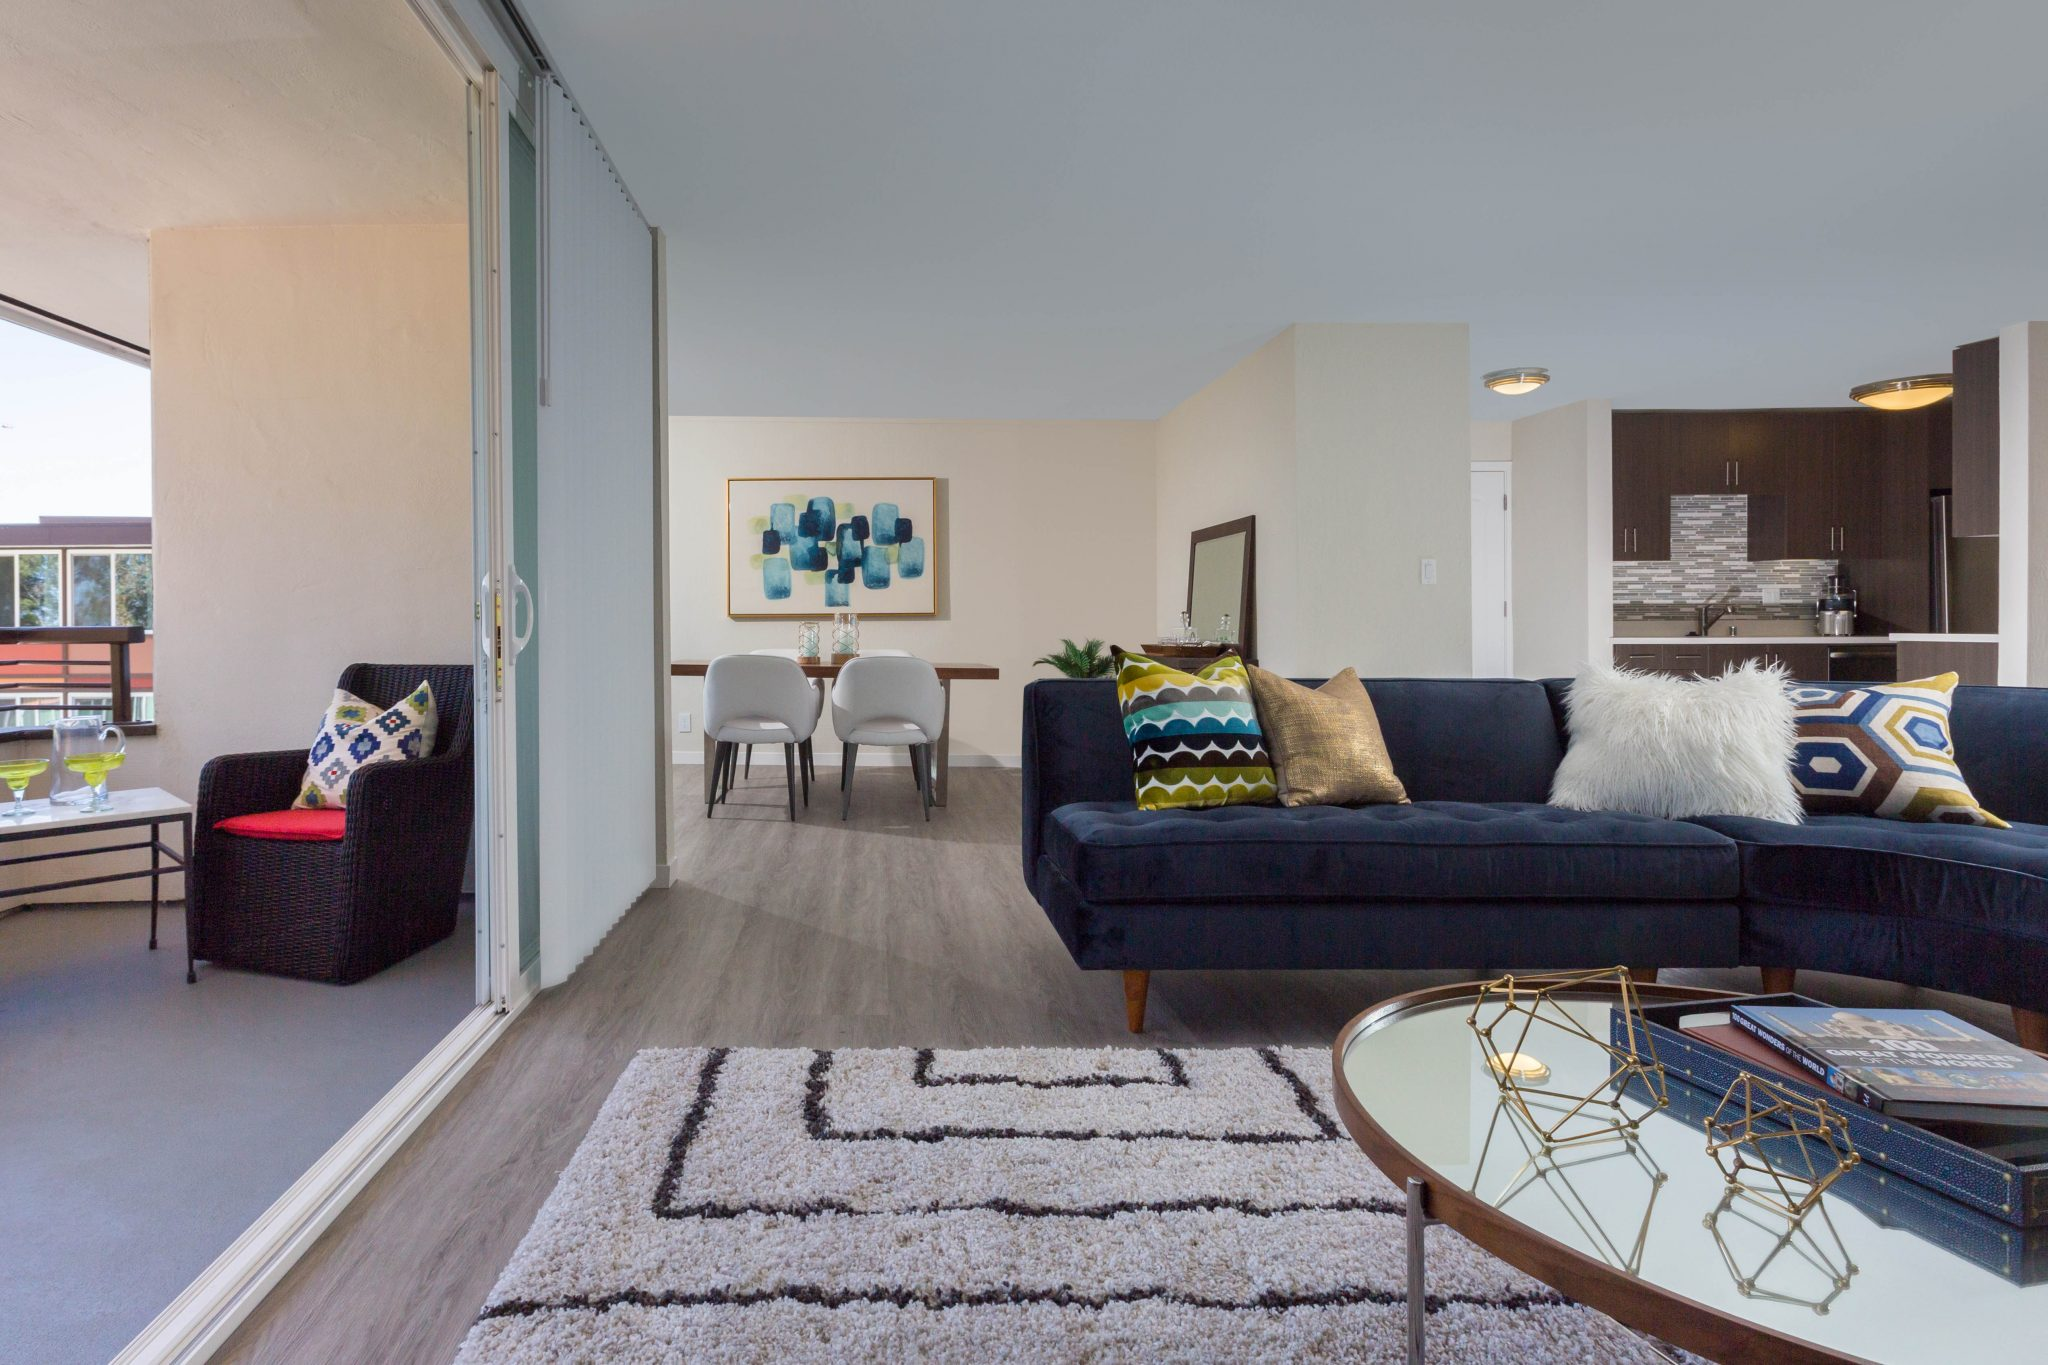 Open floor plan apartment interior of living room with dining area and kitchen in background and patio deck to the side.